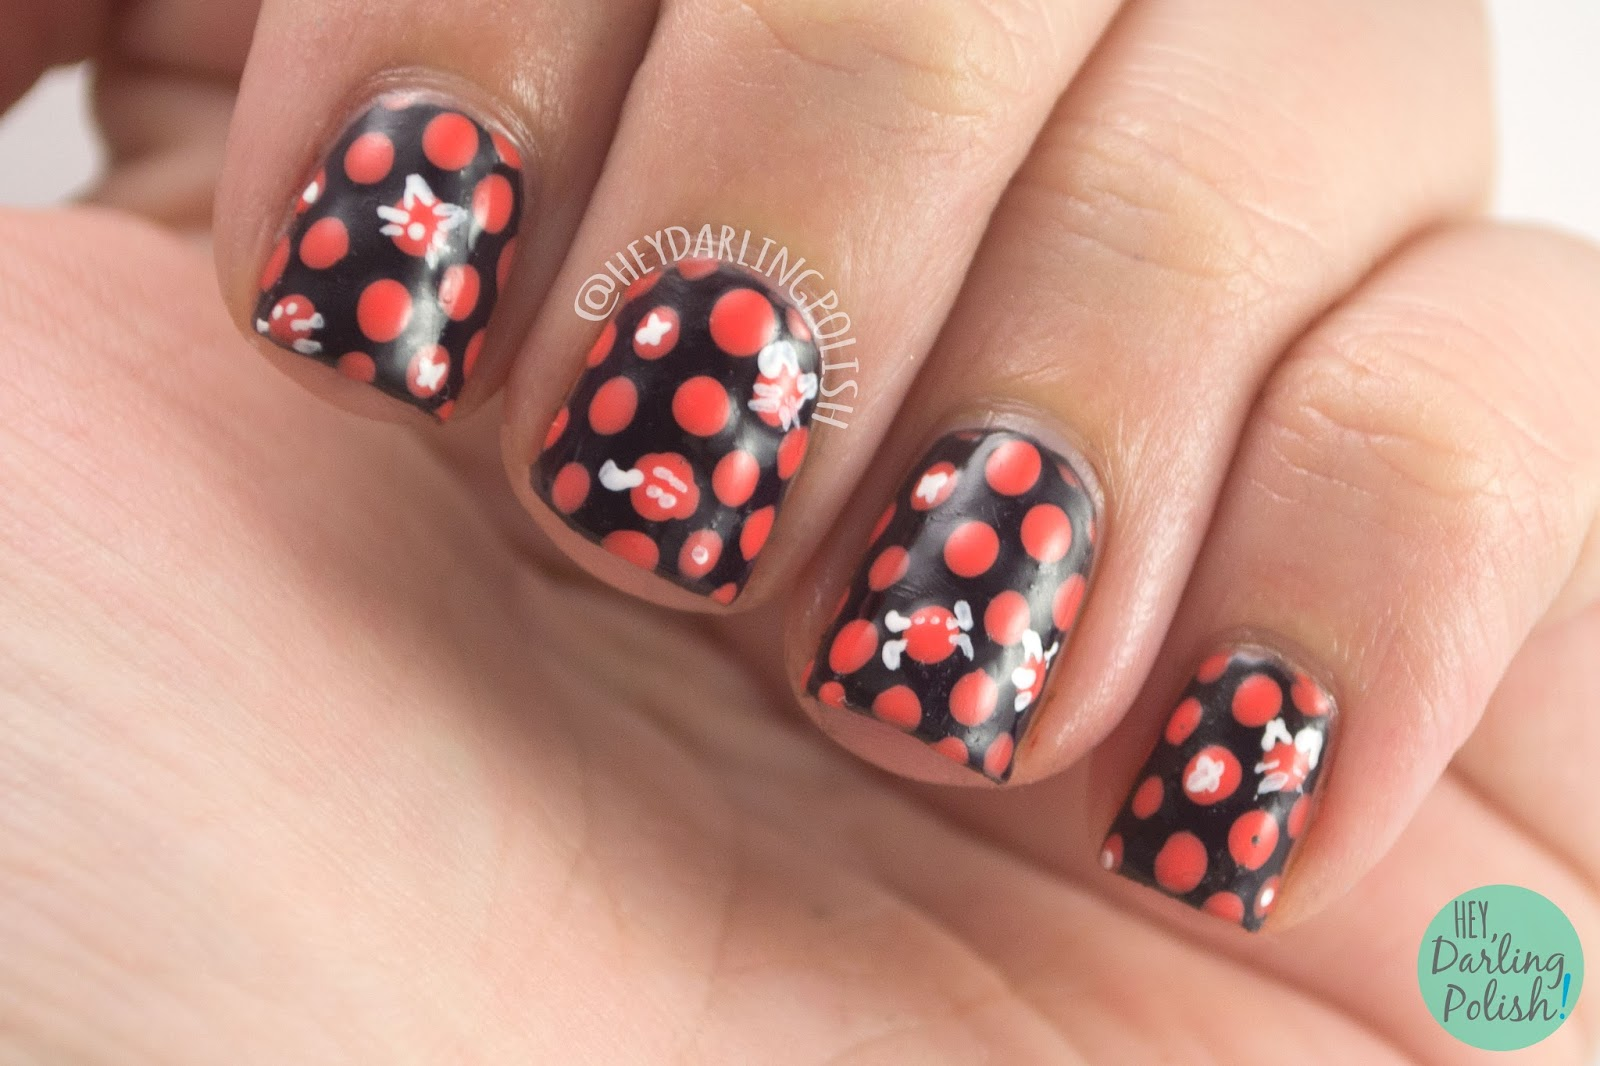 nails, nail art, nail polish, polka dots, dots, orange, black, hey darling polish, 31dc2014, 31 day challenge,